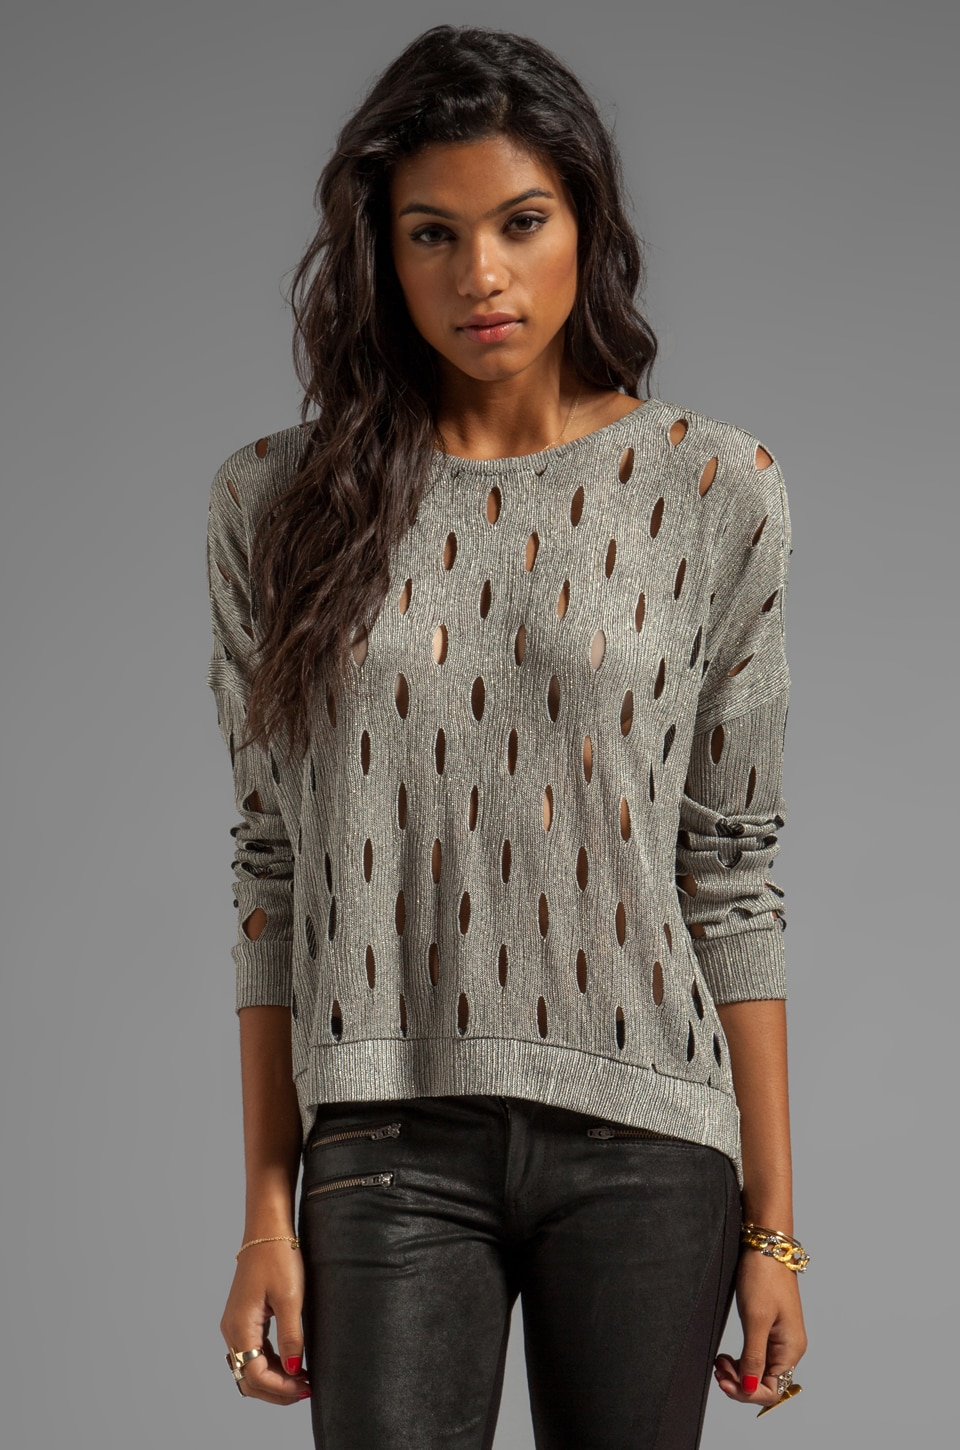 Generation Love Geneva Metal Slit Sweater in Gold